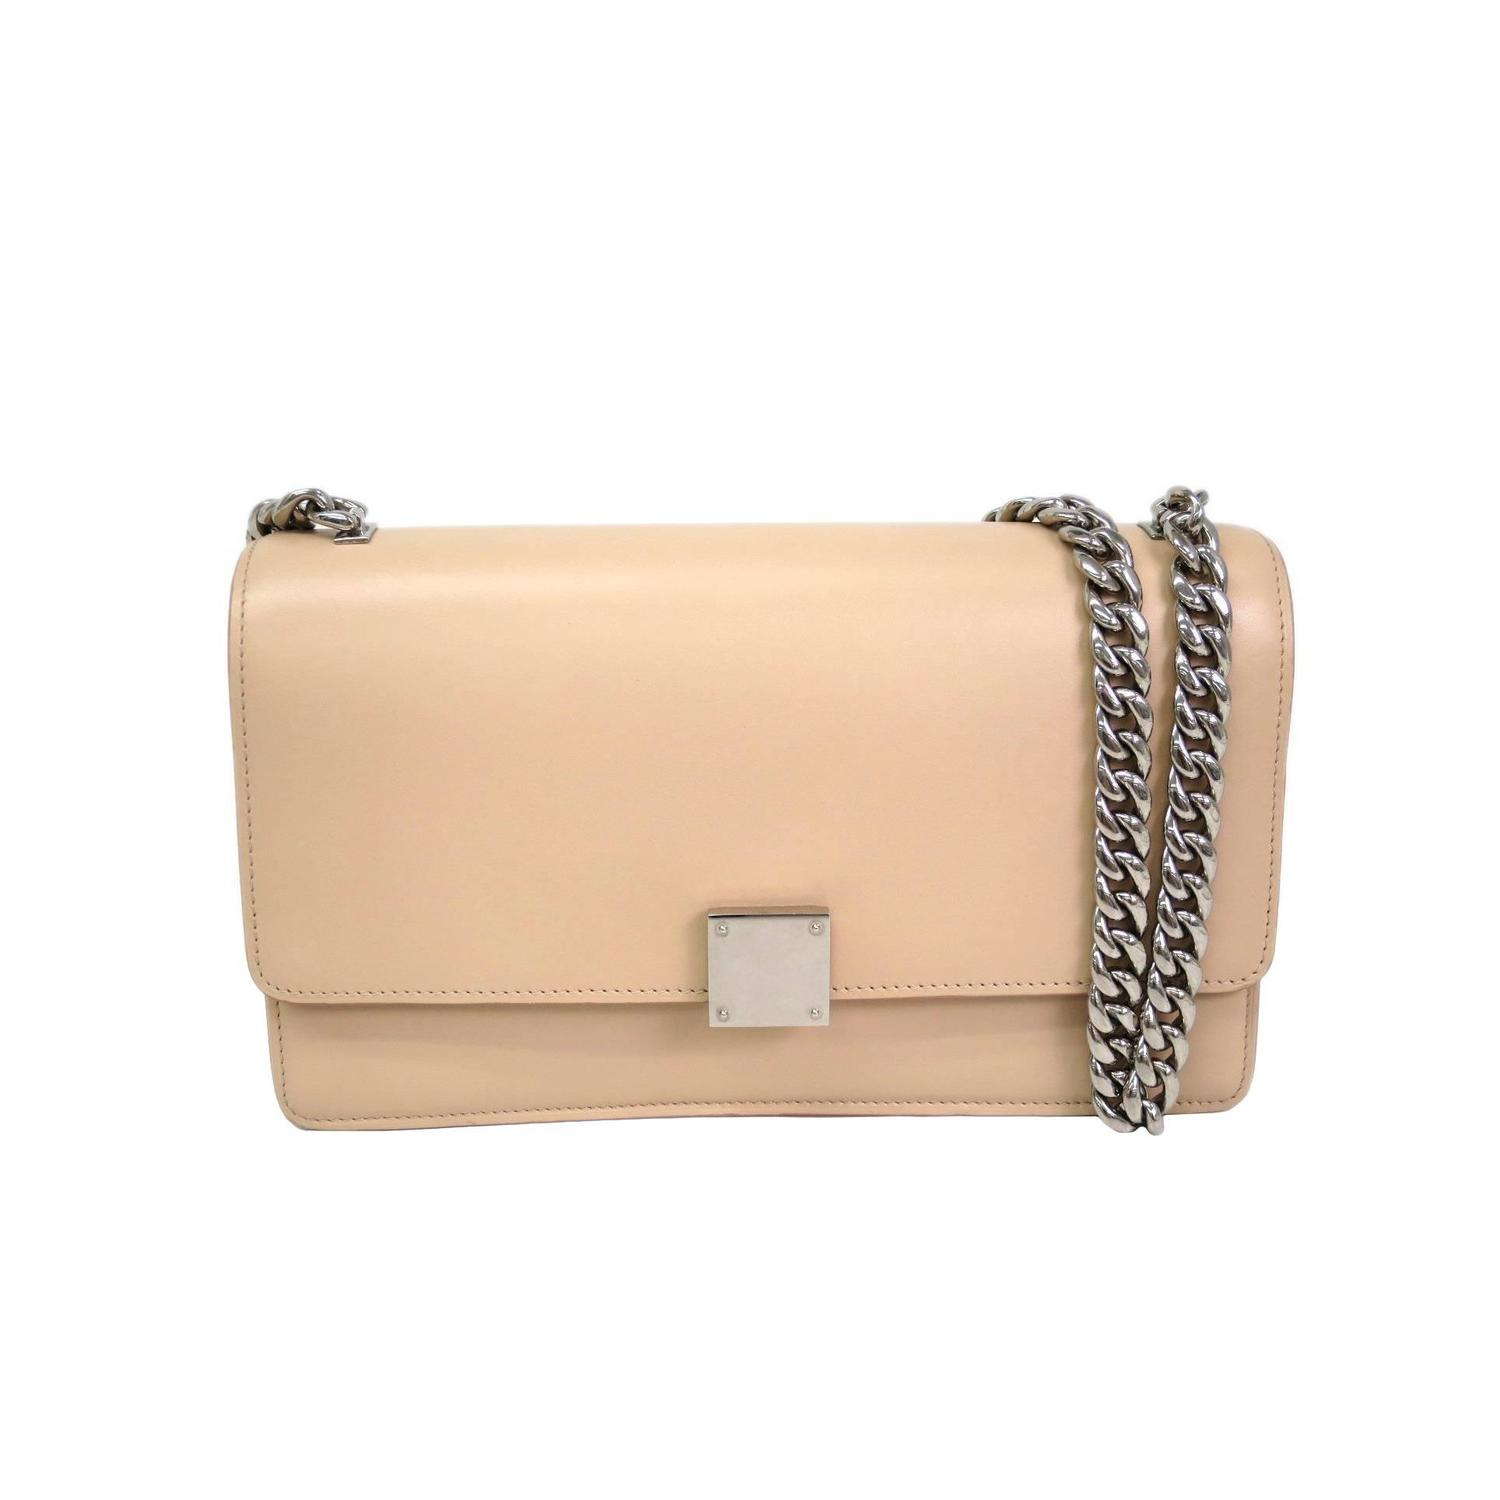 Vintage C��line Shoulder Bags - 27 For Sale at 1stdibs